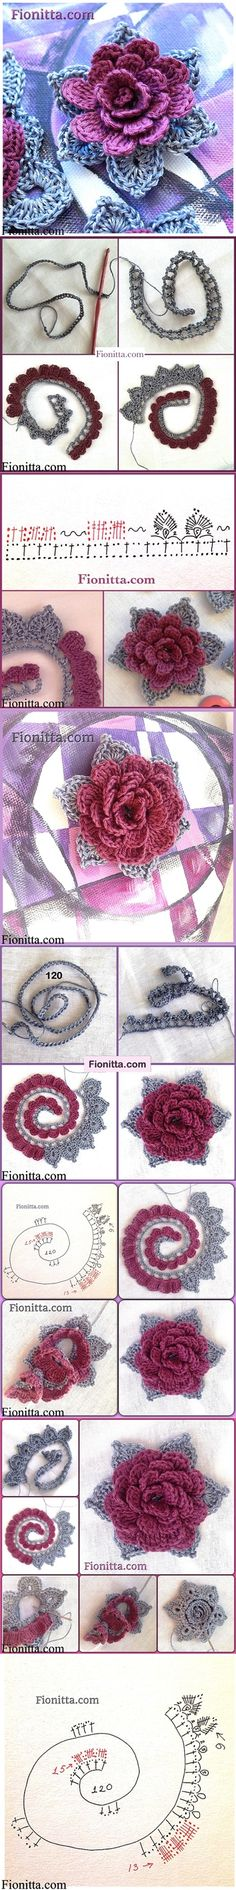 DIY 3D Crochet Rose in 3 Ways | www.FabArtDIY.com